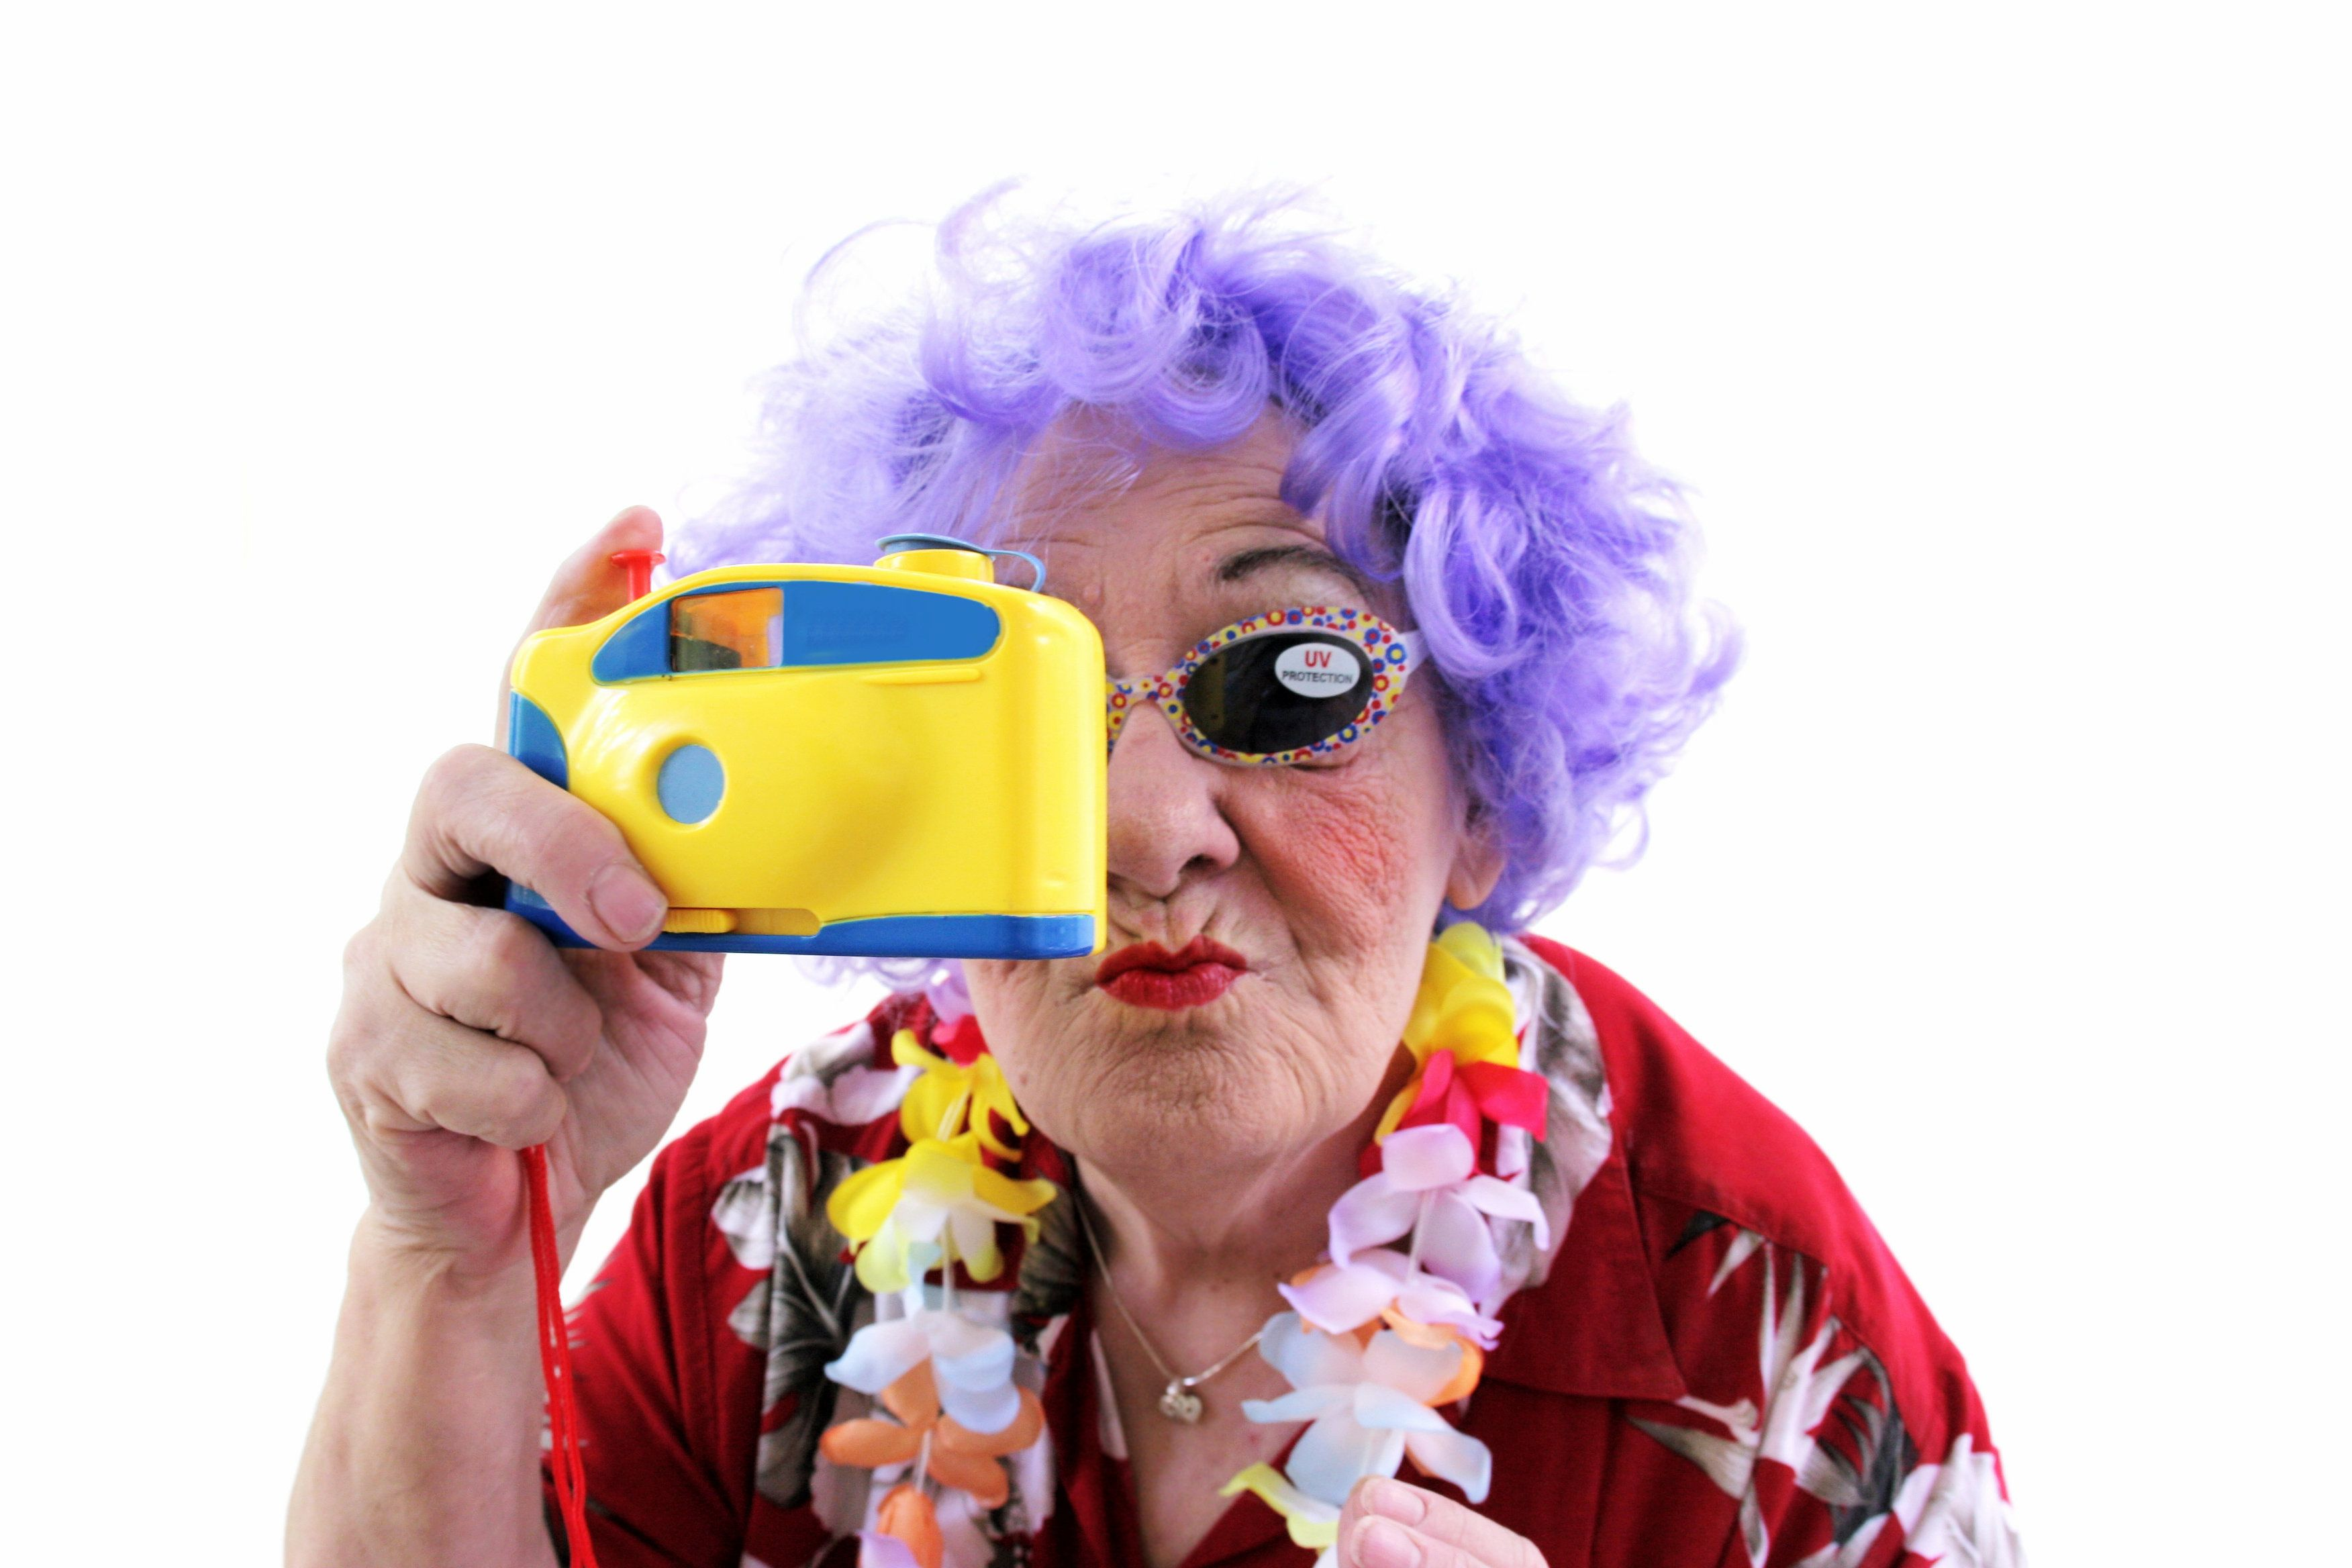 Purple haired crazy granny on white background. She's wearing a hawaiian shirt, lei, sunglasses with UV sticker and holding a toy camera. Part of a senior humor character series